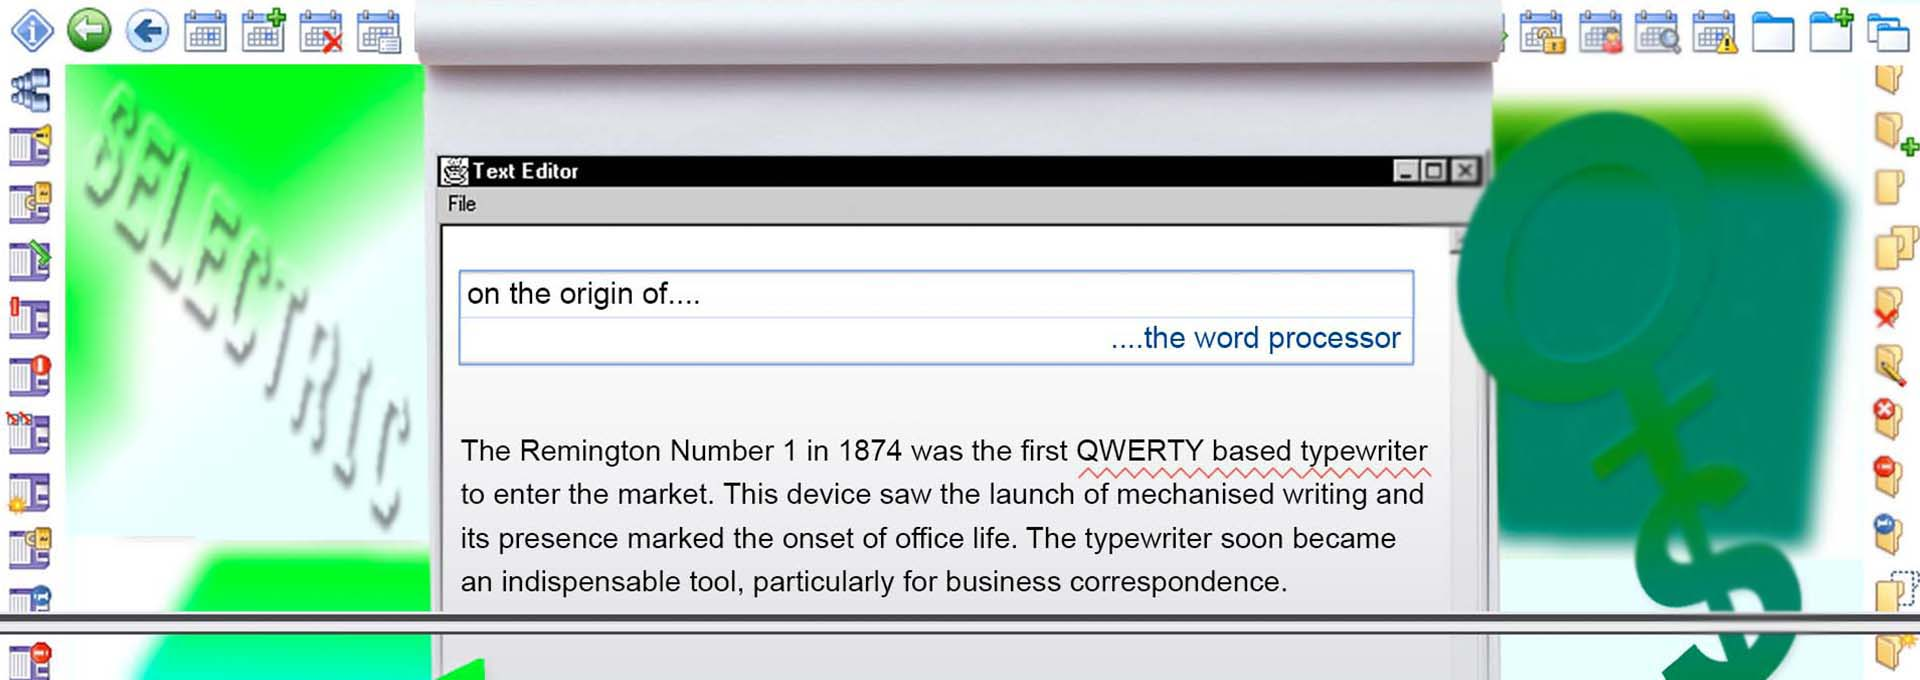 Visual of On the origin of the word processor